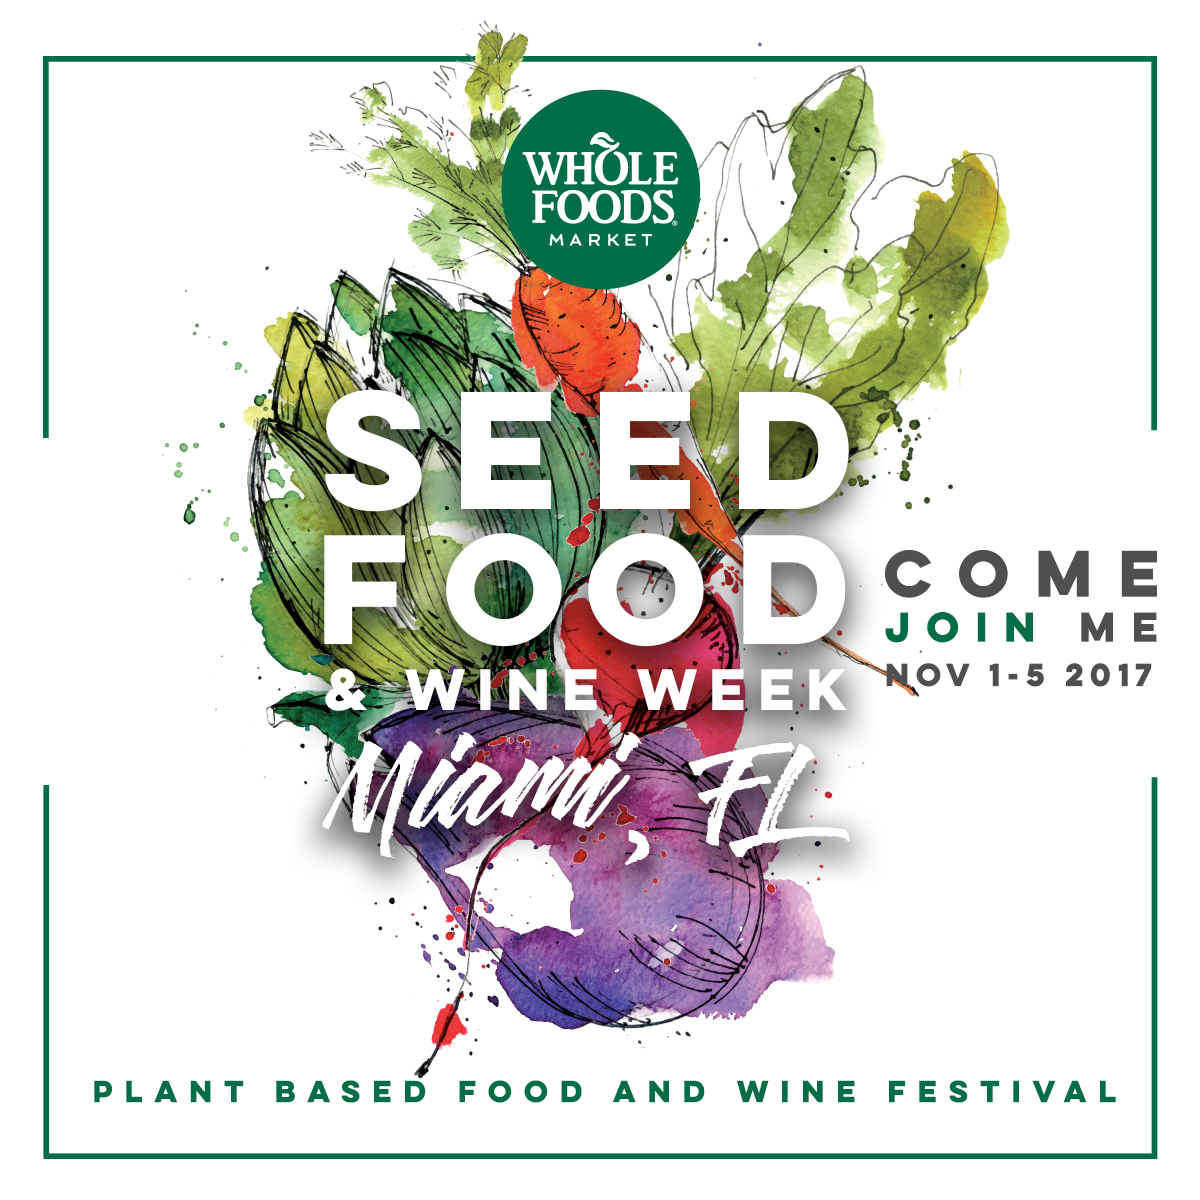 tasting village - We will be at Seed Food & Wine's Tasting Village on Nov. 4 2017. Get your tickets and join us!